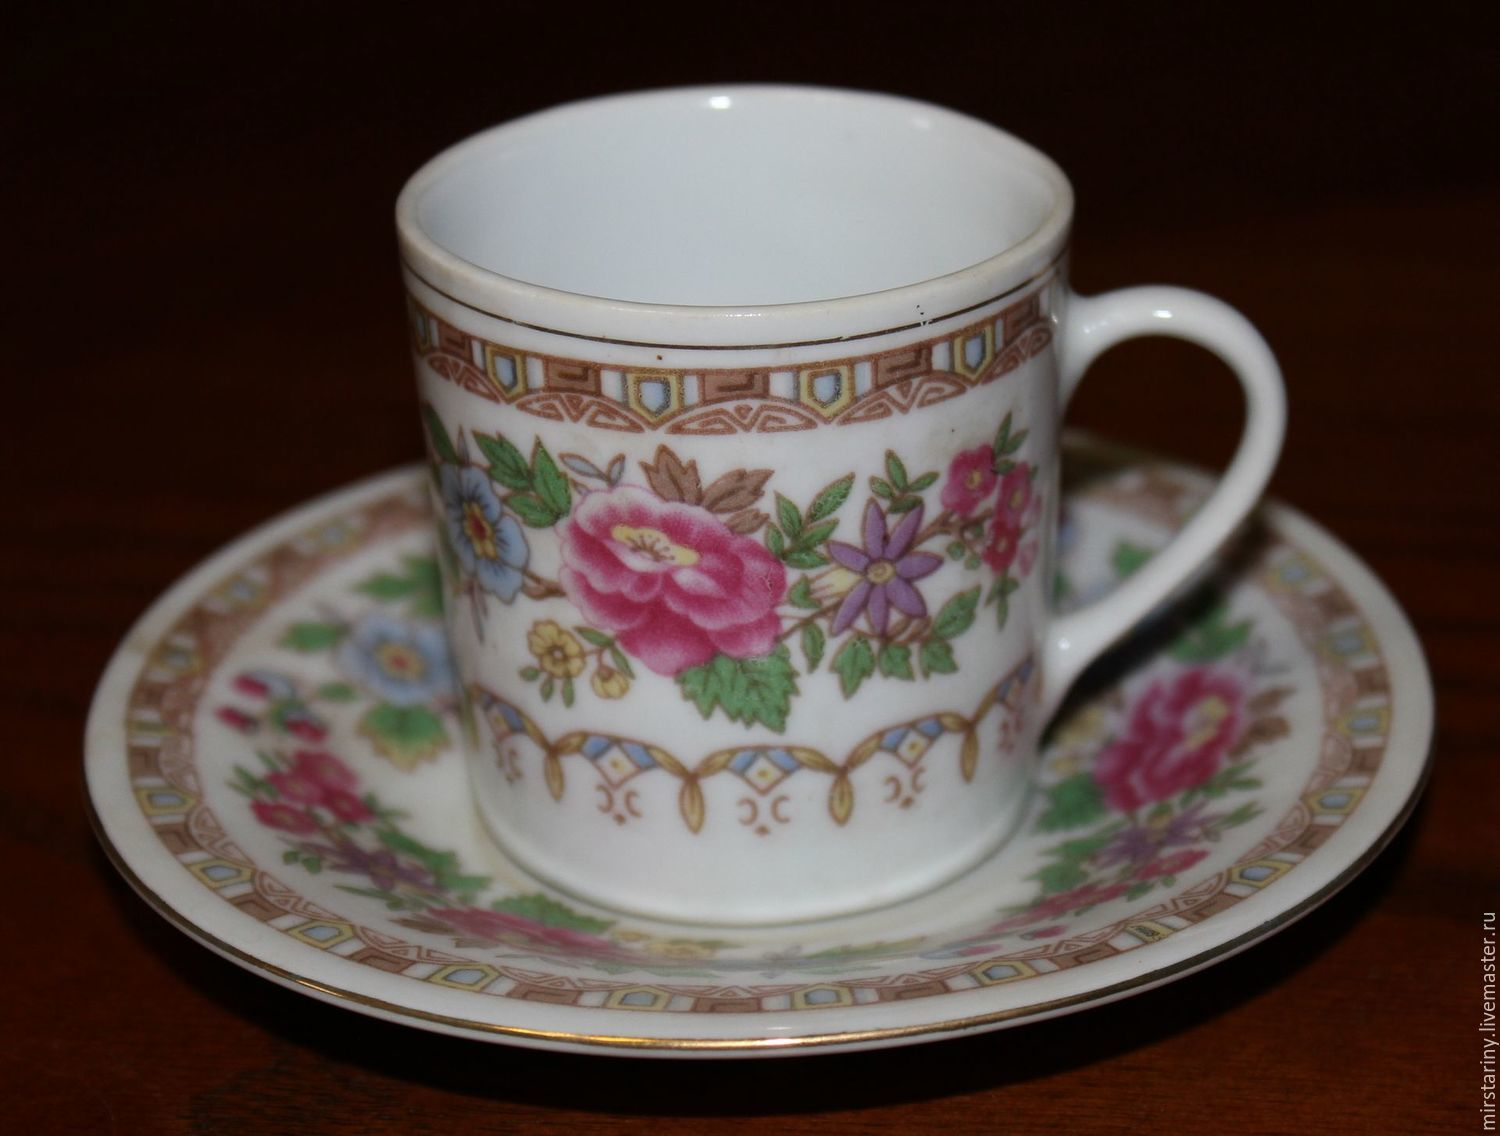 Vintage coffee steam expresso coffee with flowers, China, 1970, Vintage mugs, Moscow,  Фото №1